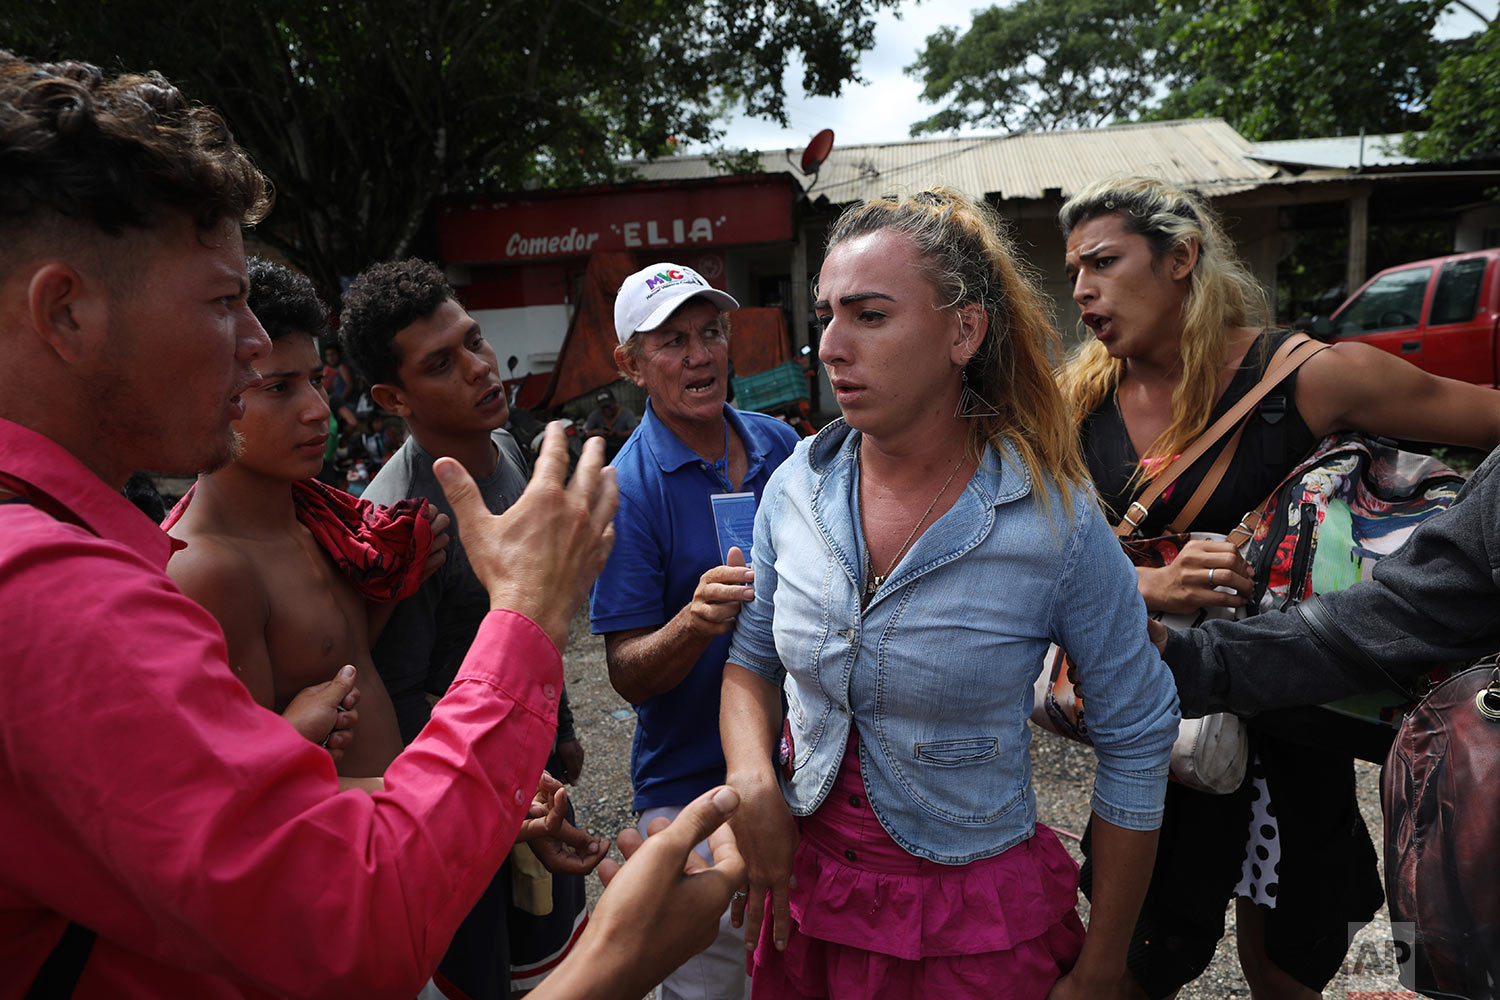 In this Nov. 3, 2018 photo, Honduran transgender Mariela Mejia, 22, who is traveling with the Central American migrants caravan hoping to reach the U.S. border, is pressured into sharing a wad of money given to her by a passerby, on the road to Isla, Mexico. (AP Photo/Rodrigo Abd)